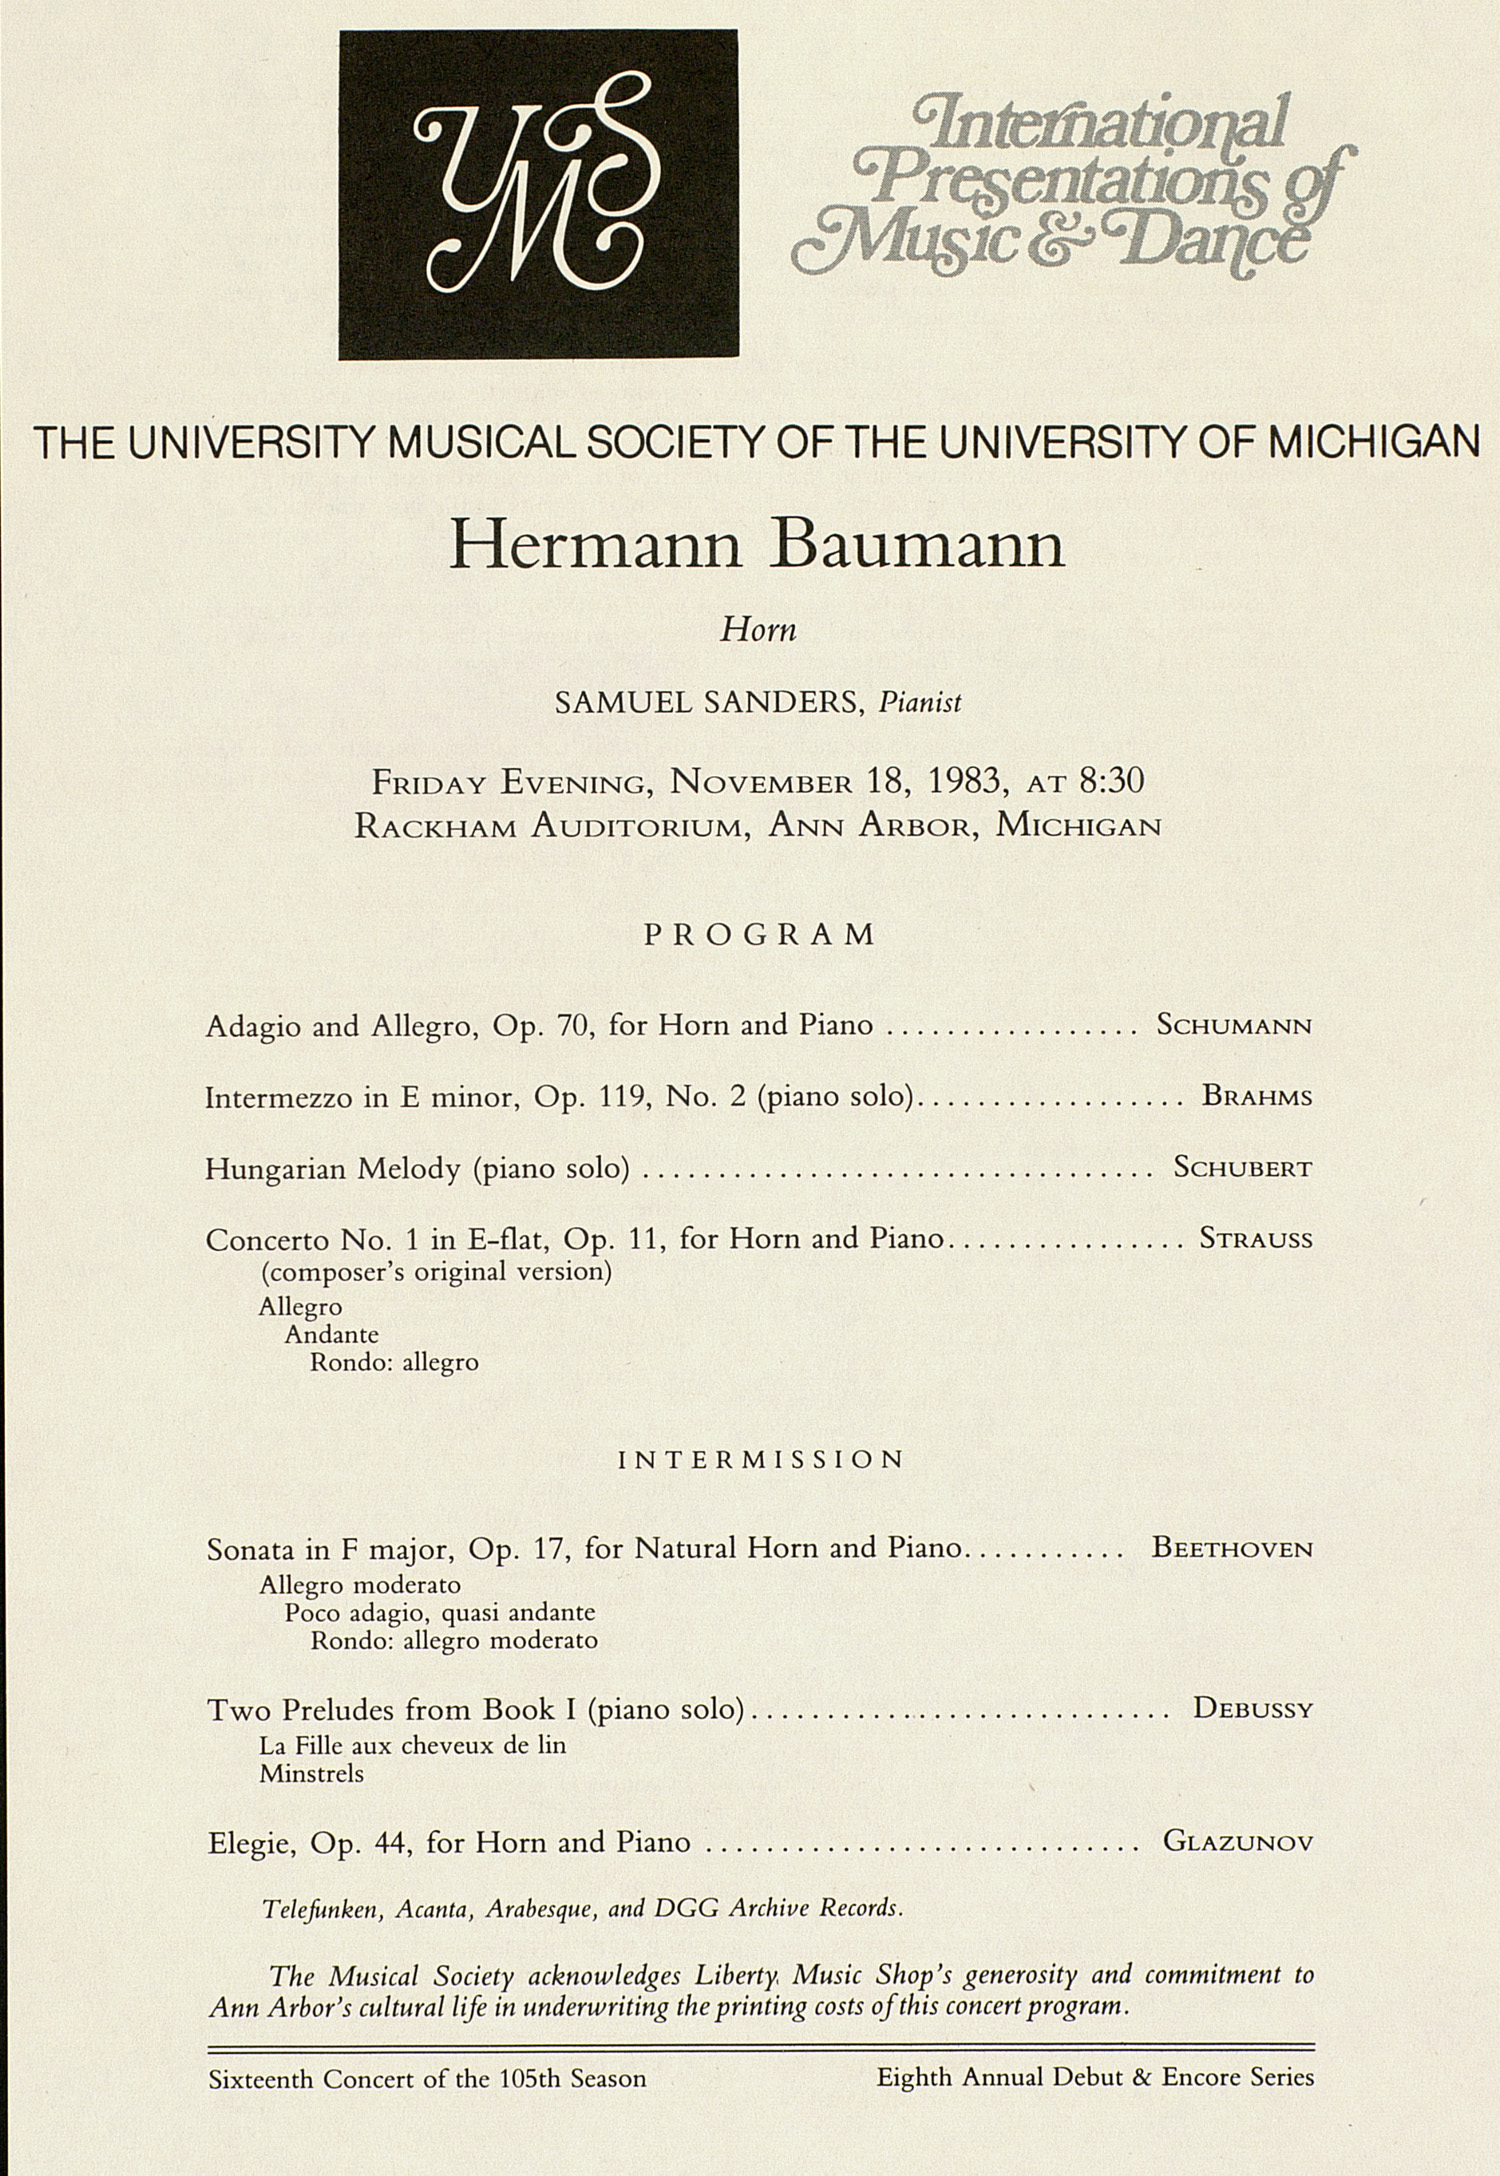 UMS Concert Program, November 18, 1983: International Presentations Of Music & Dance --  image